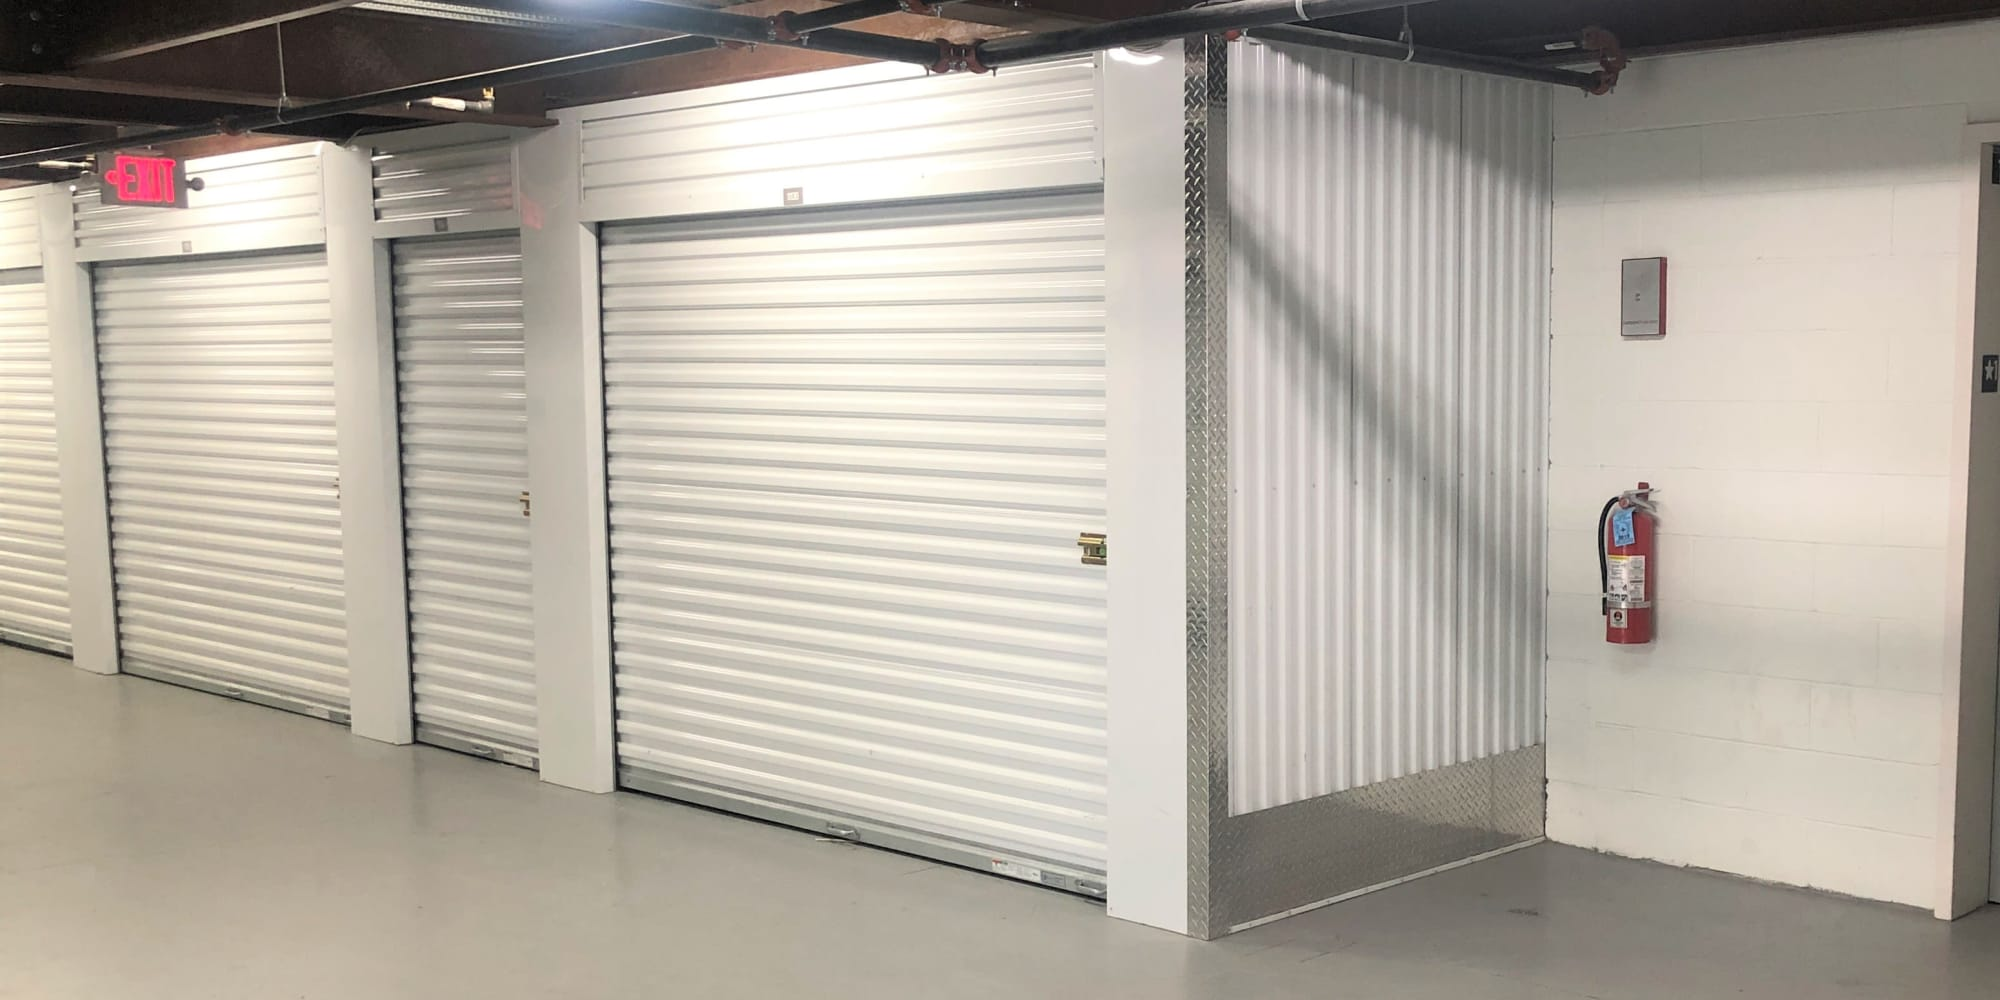 Features at Storage 365 in St. Paul, Minnesota